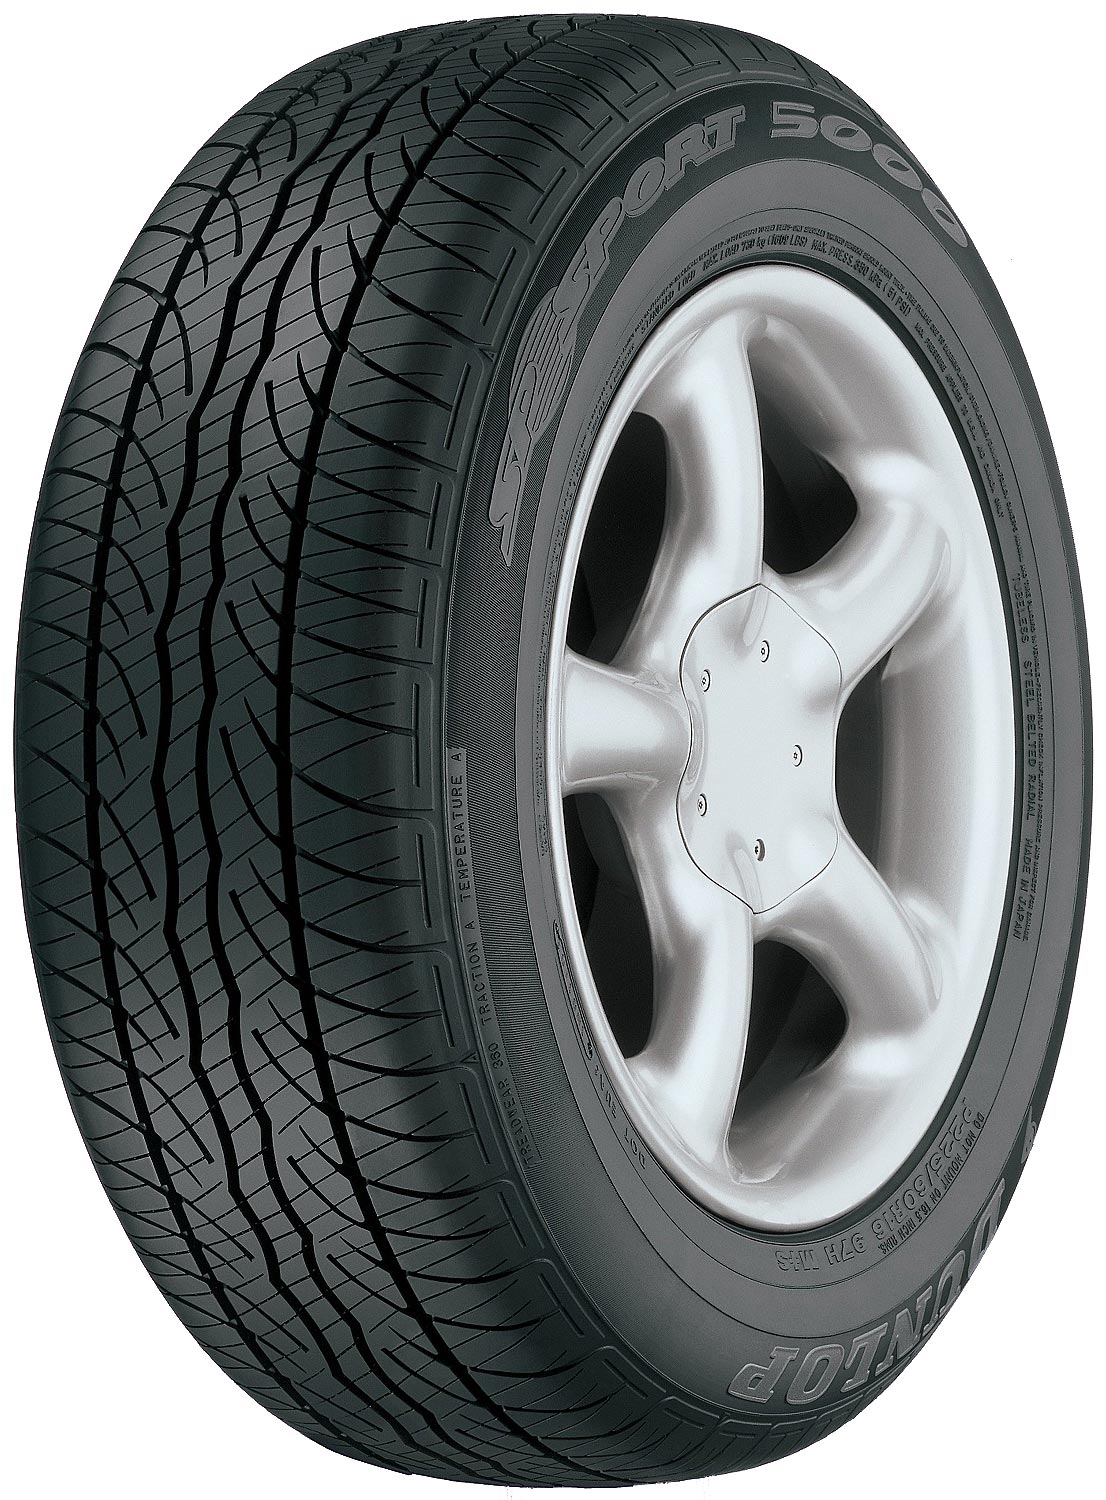 New Run Flat Tires for Sale - Best Tire Prices   Tires-easy.com